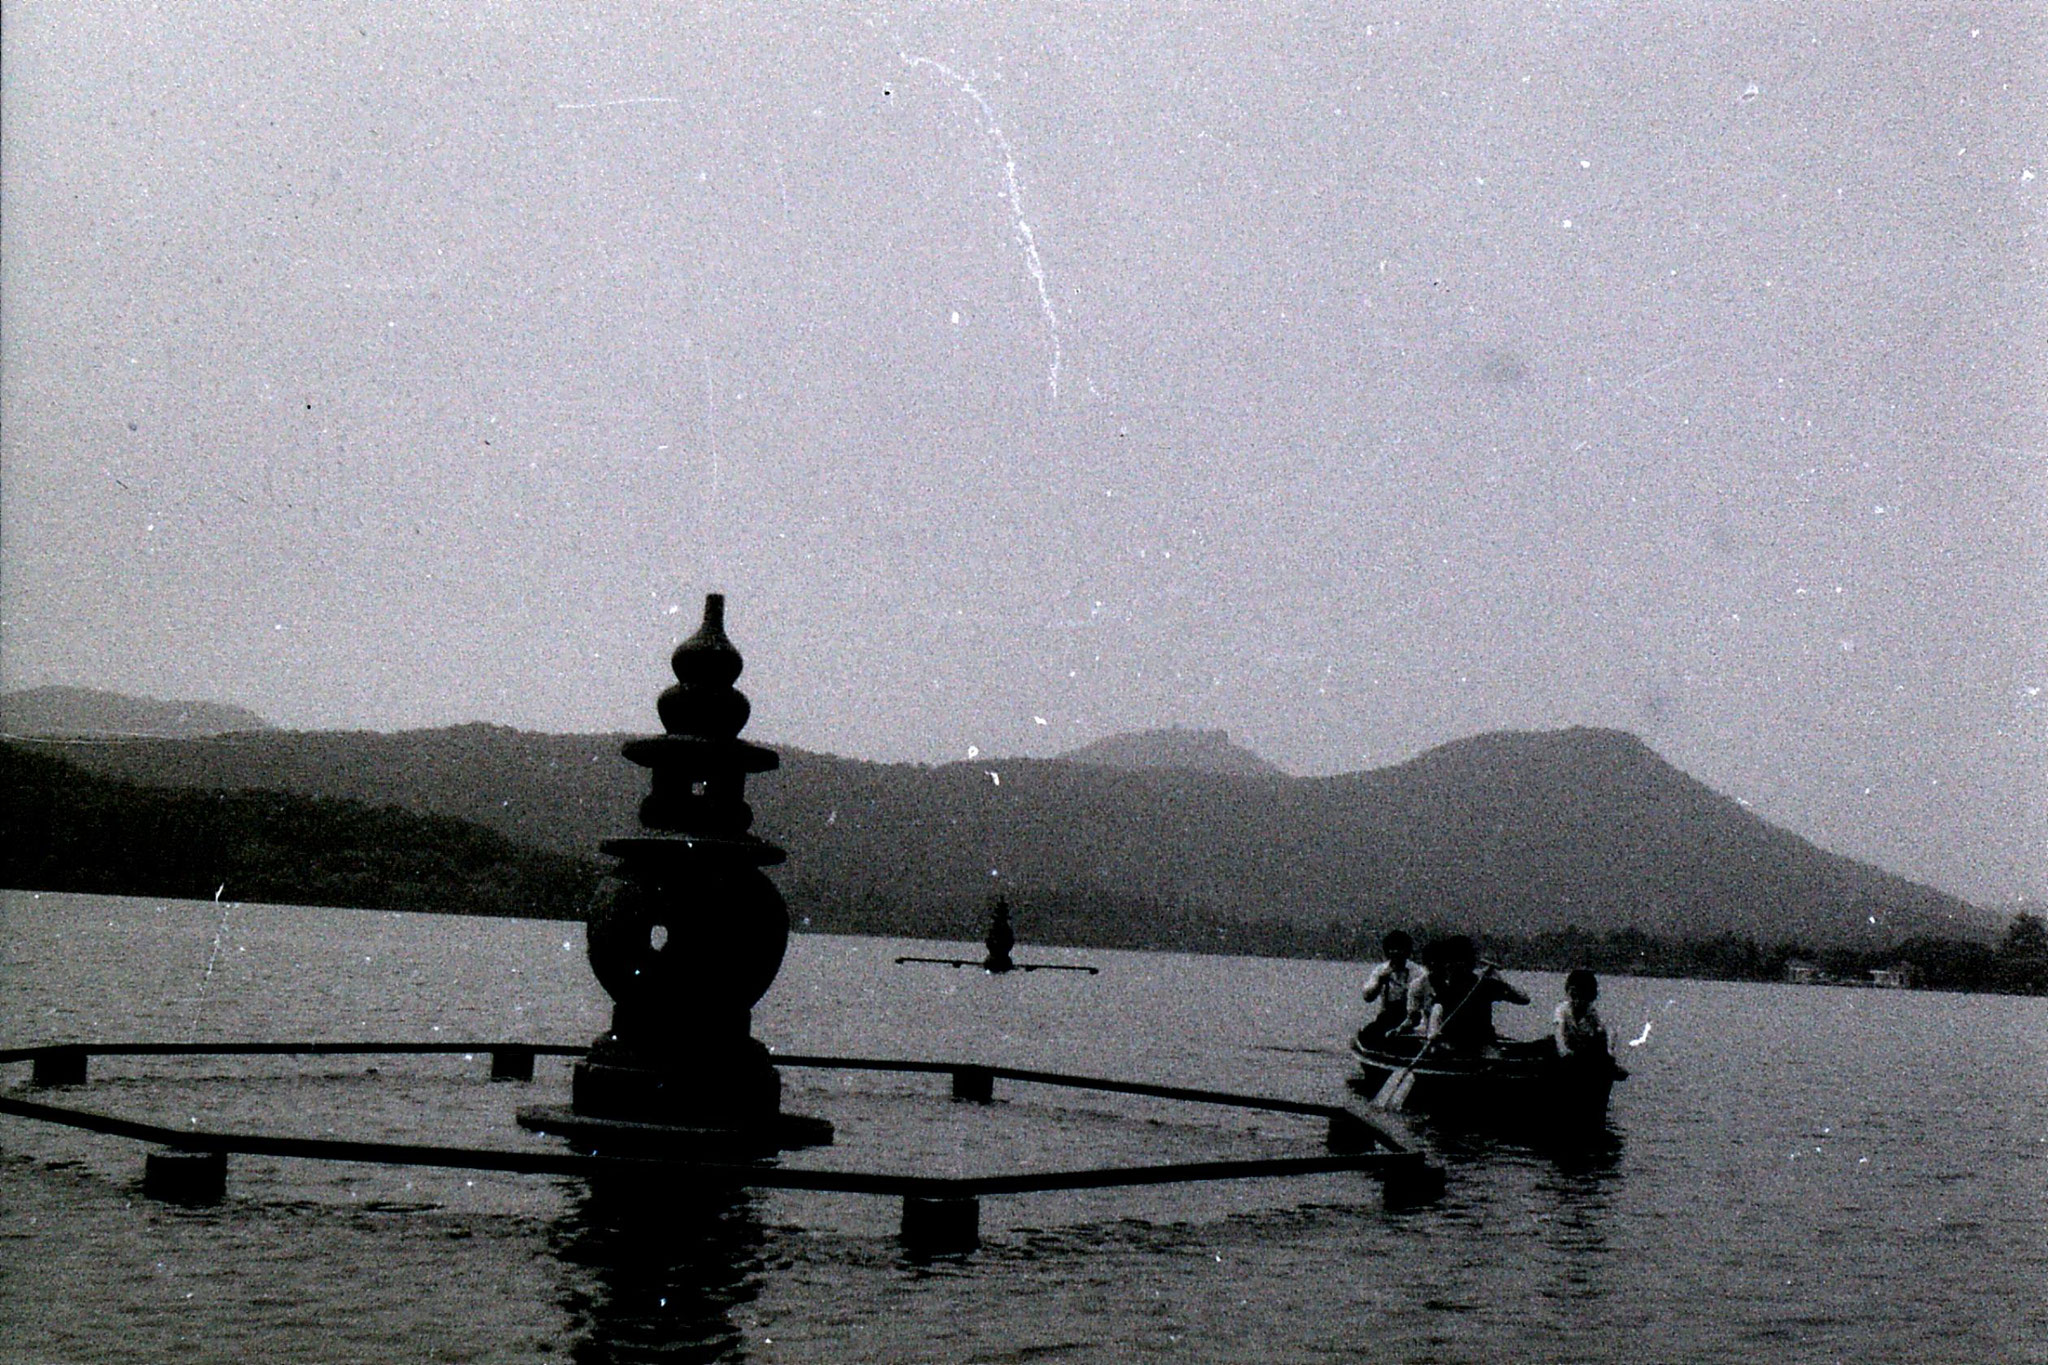 19/6/1989: 36: group visit to West Lake